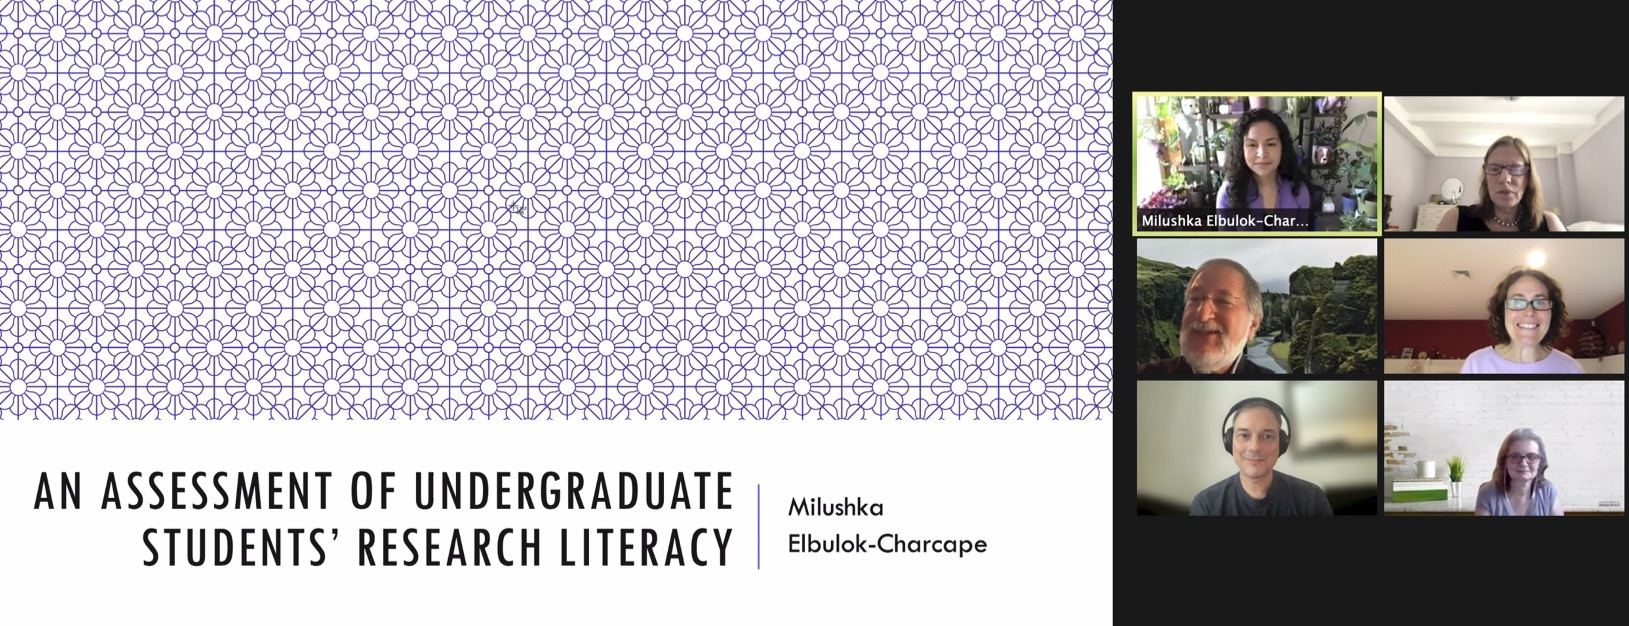 Milushka Elbulok-Charcape (top left) presents to her dissertation committee and readers.